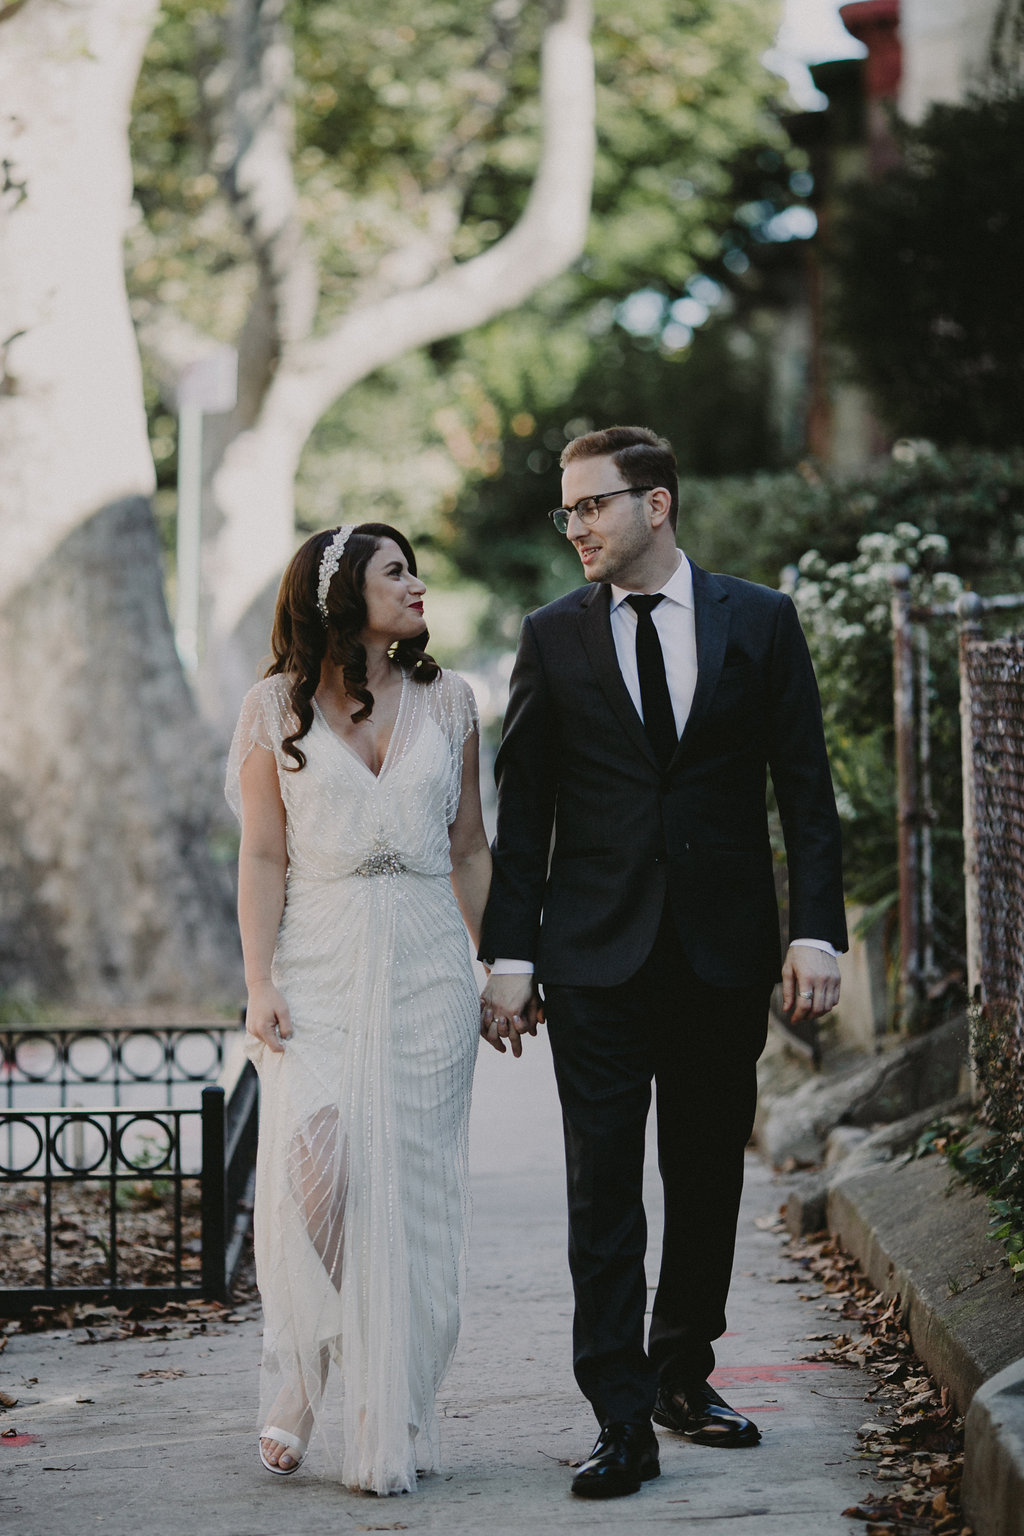 New York weddings - photo by Chellise Michael Photography https://ruffledblog.com/vintage-inspired-multicultural-wedding-in-palisades-ny